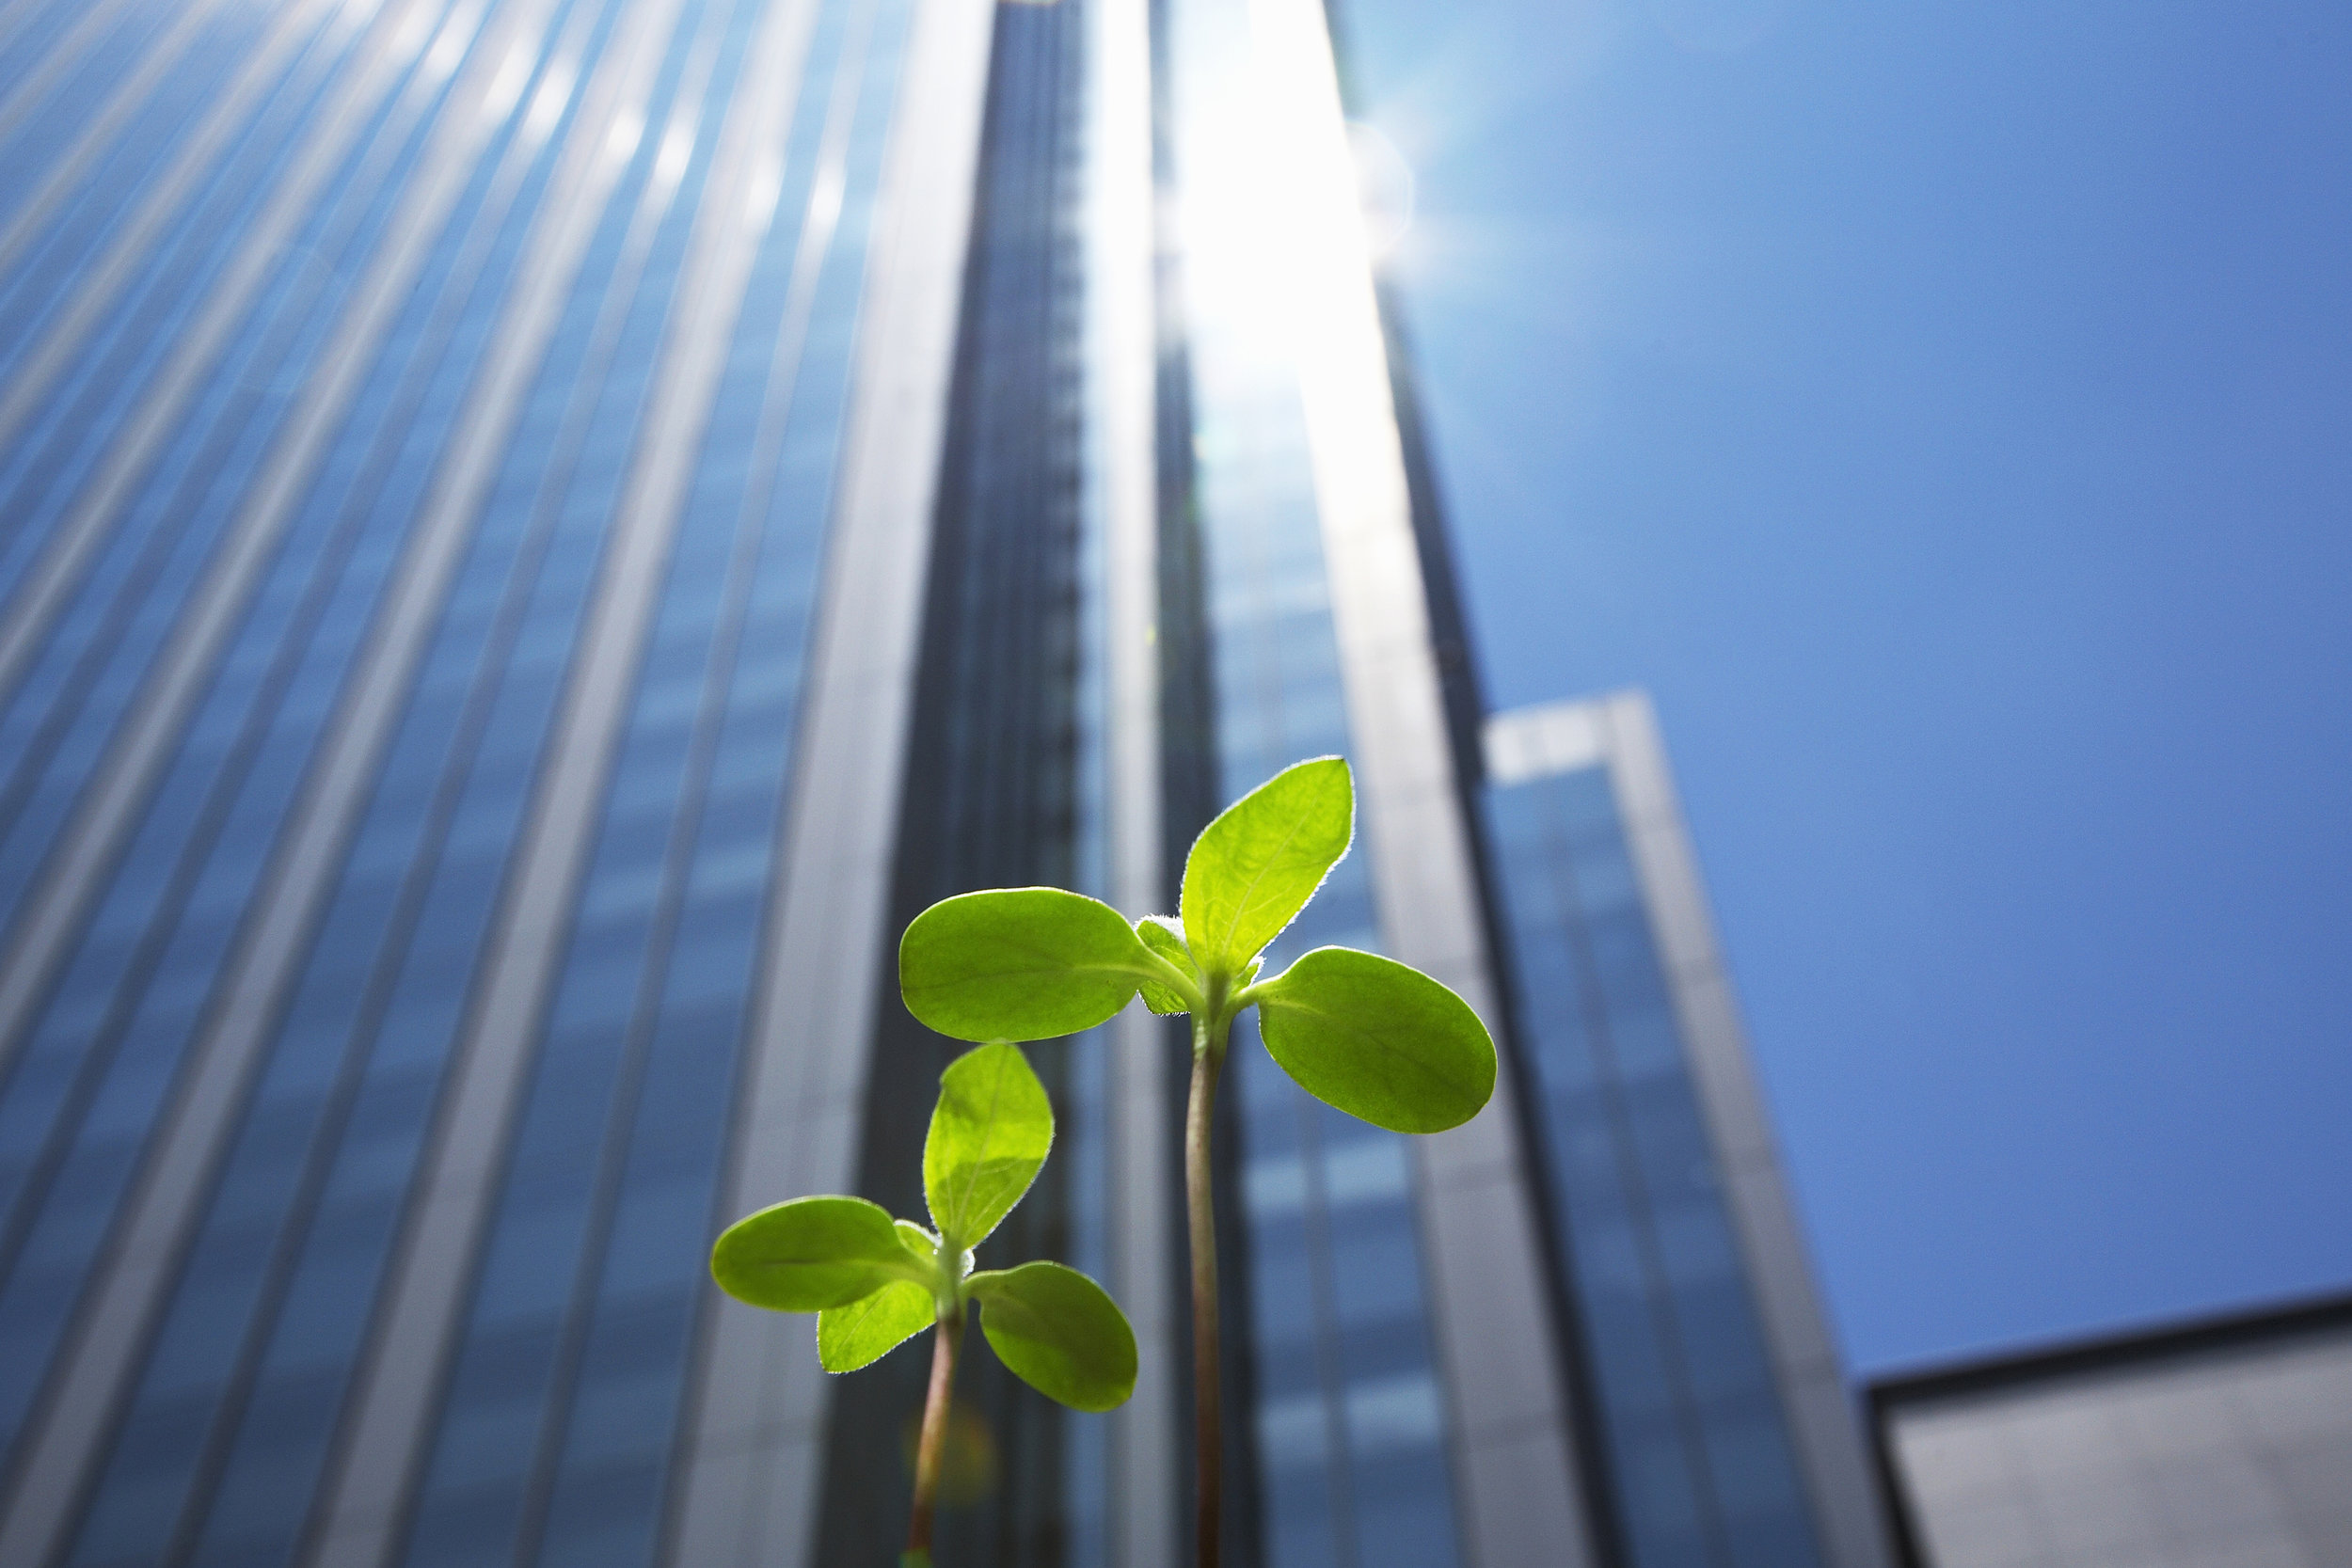 thumbnail Study Links Green Buildings to Higher Cognitive Function